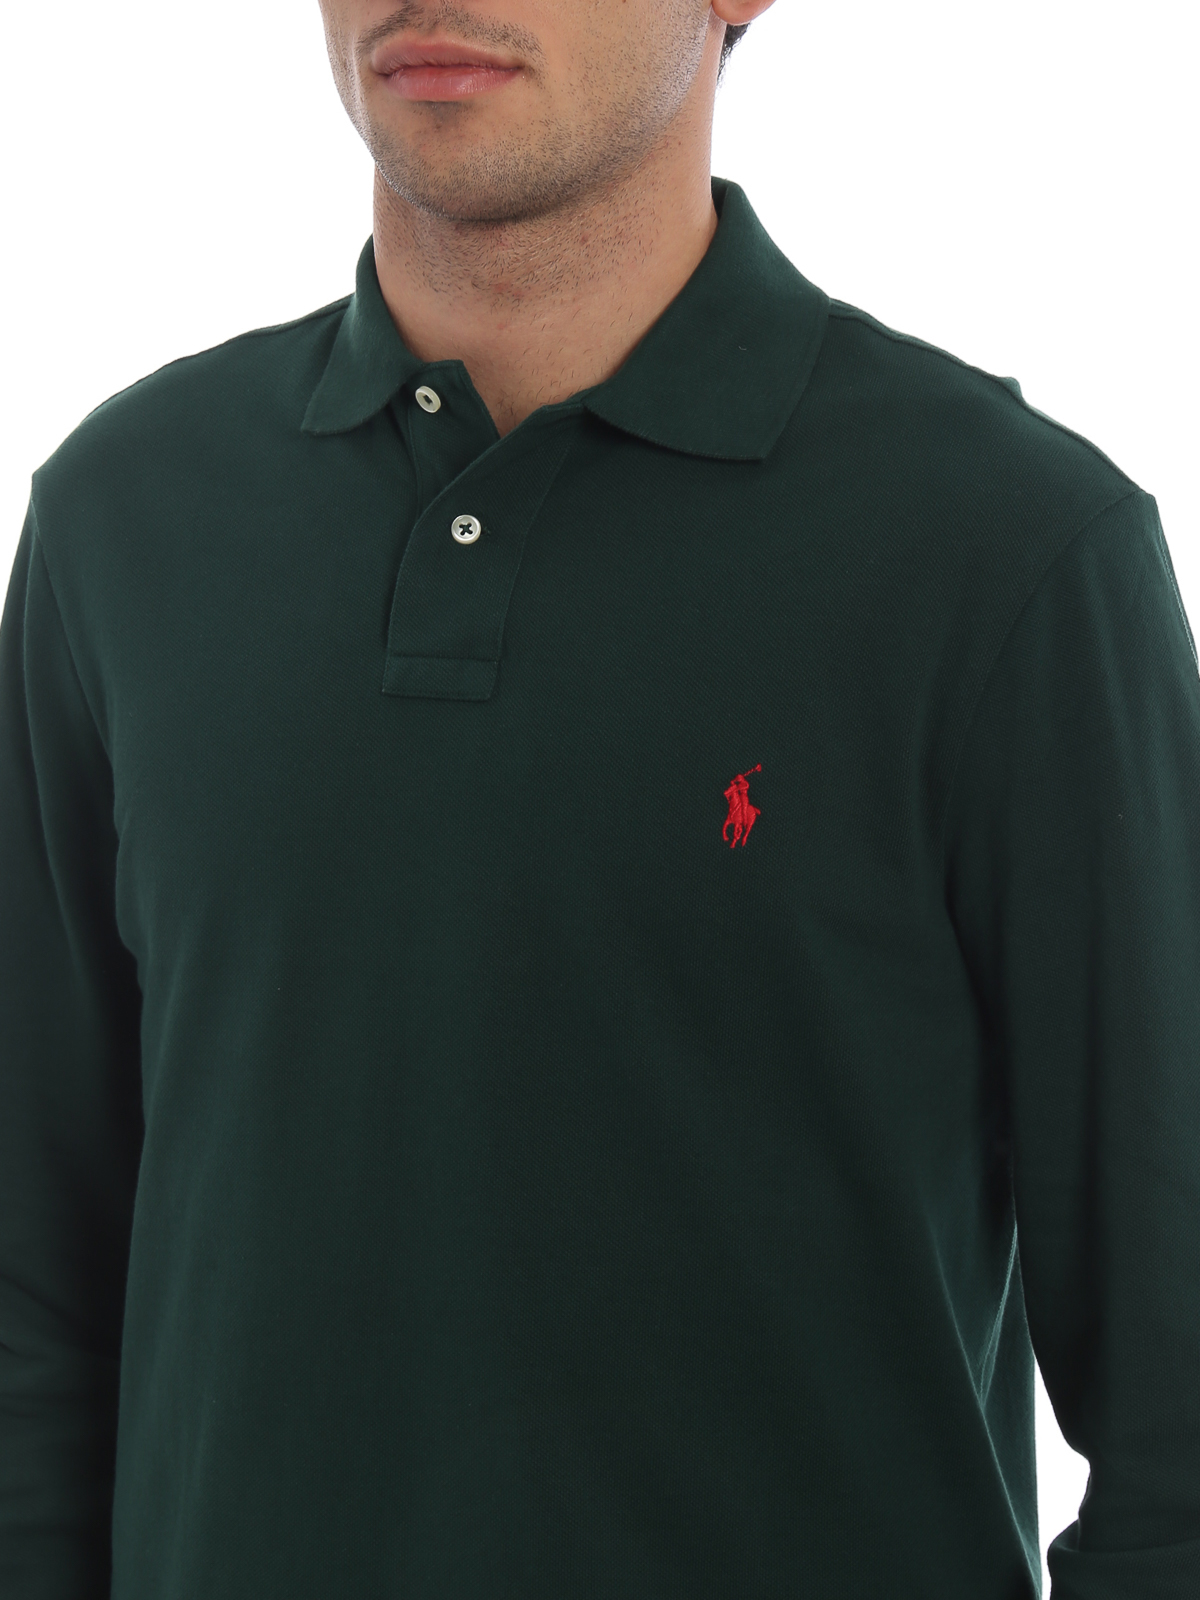 Polo Ralph Lauren Bottle Green Cotton Long Sleeve Polo Shirt